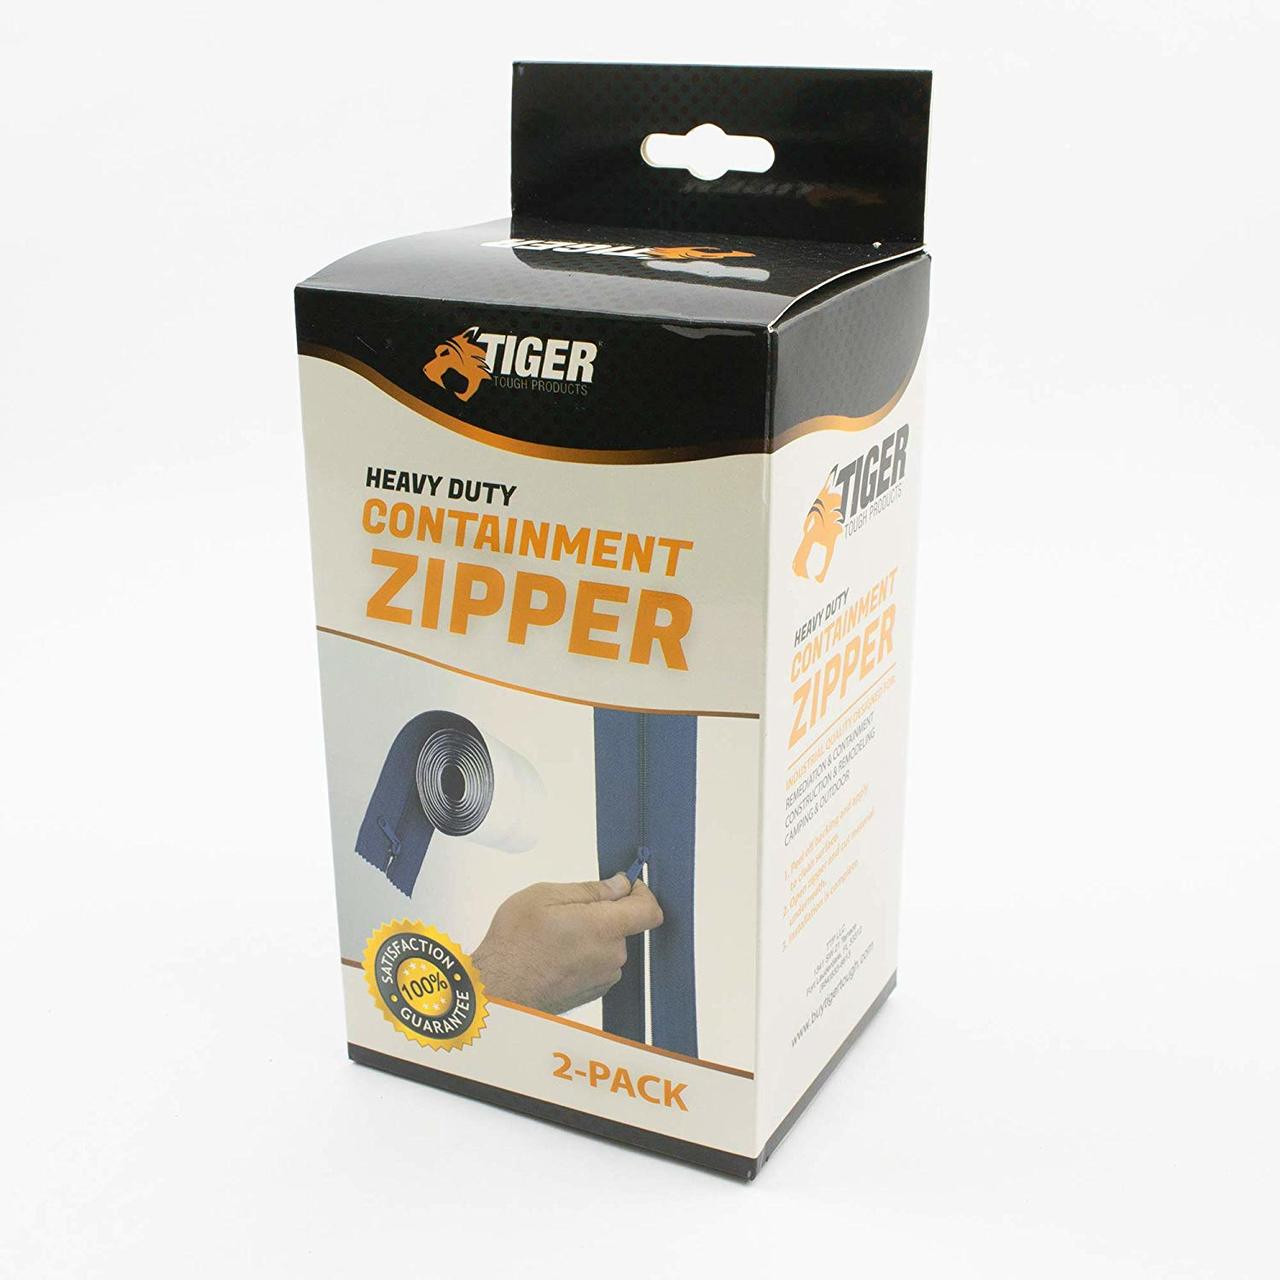 Tiger Tough Heavy Duty Adhesive Containment Zippers – 84 Inch Self Stick Zipper for Dust Barriers, Containment Walls, Plastic Sheeting, Tarp, Construction, Remediation, Camping & More